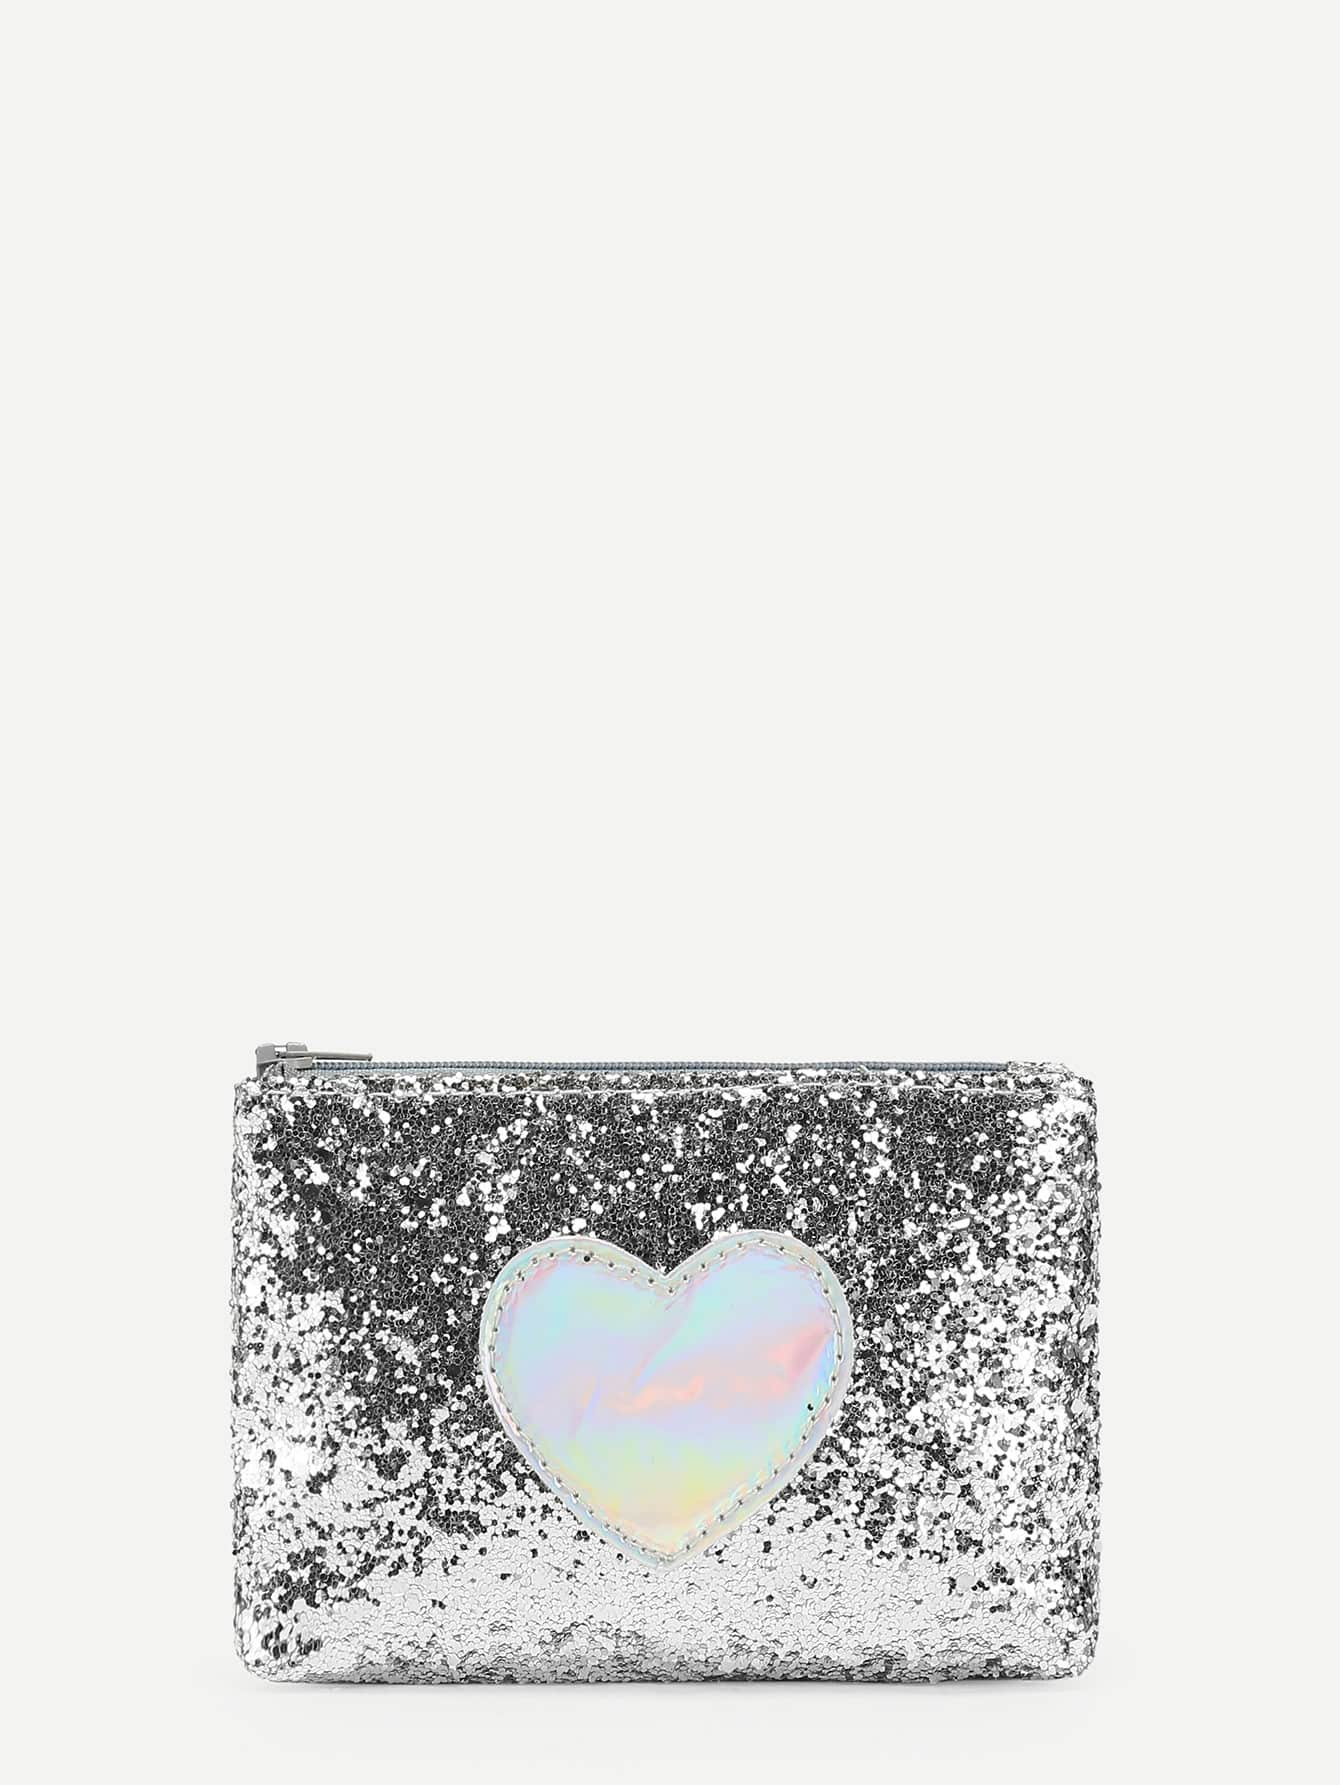 Shoppr Fashion Beauty Search Shopping For Women Catriona By Cocolyn Buckle Sling Bag Grey